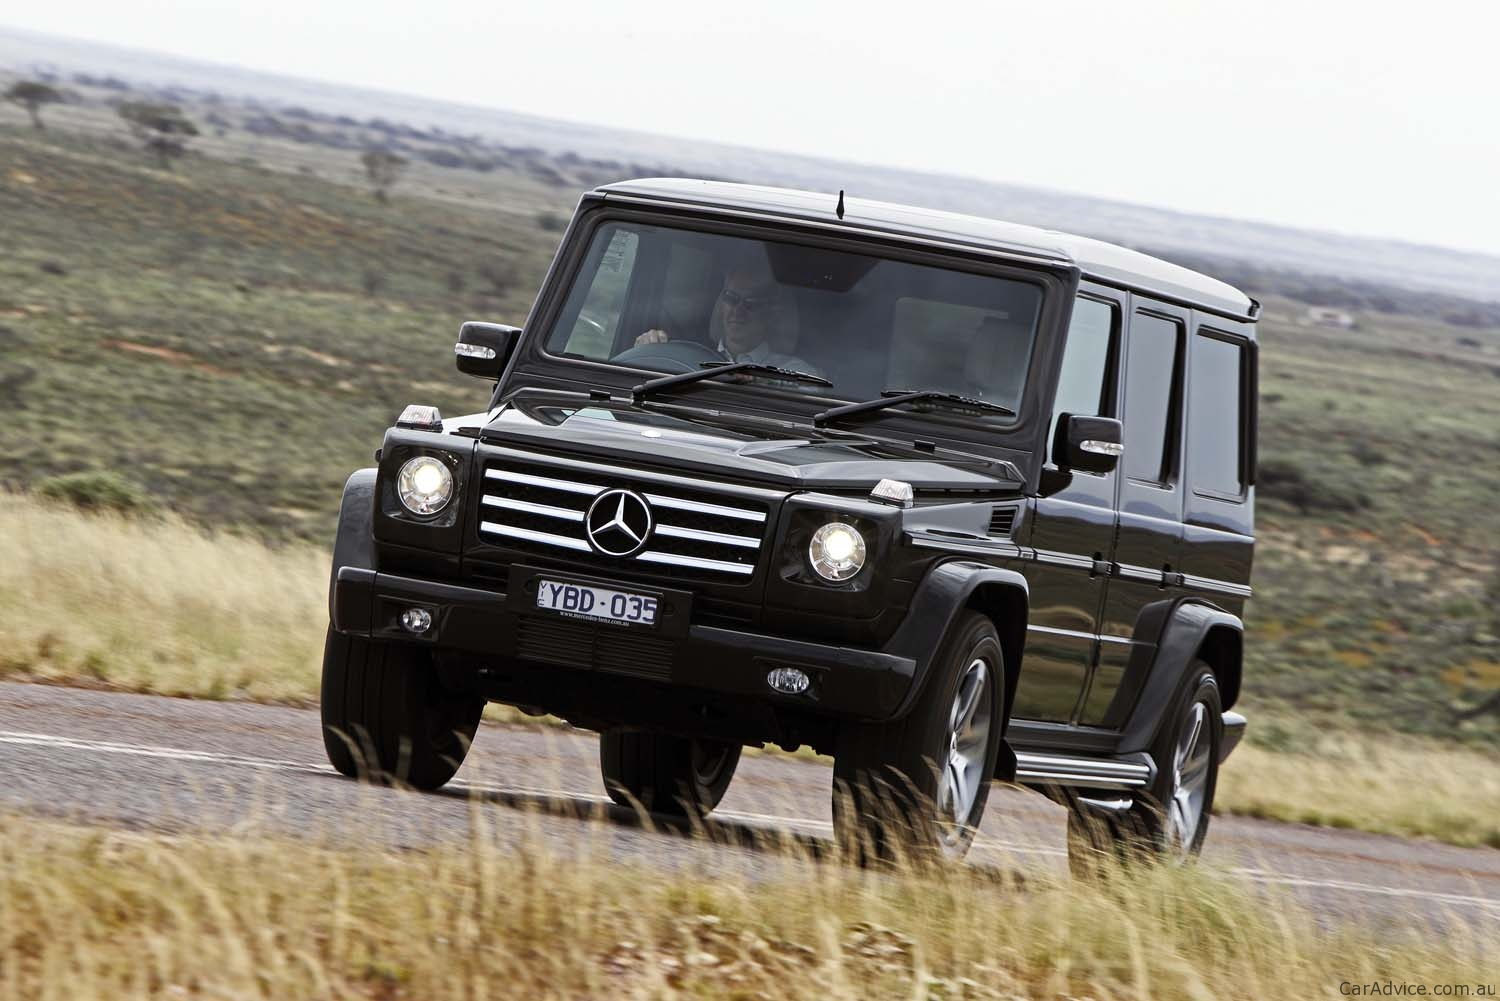 Mercedes Benz G55 Amg Amp G350 Review Caradvice